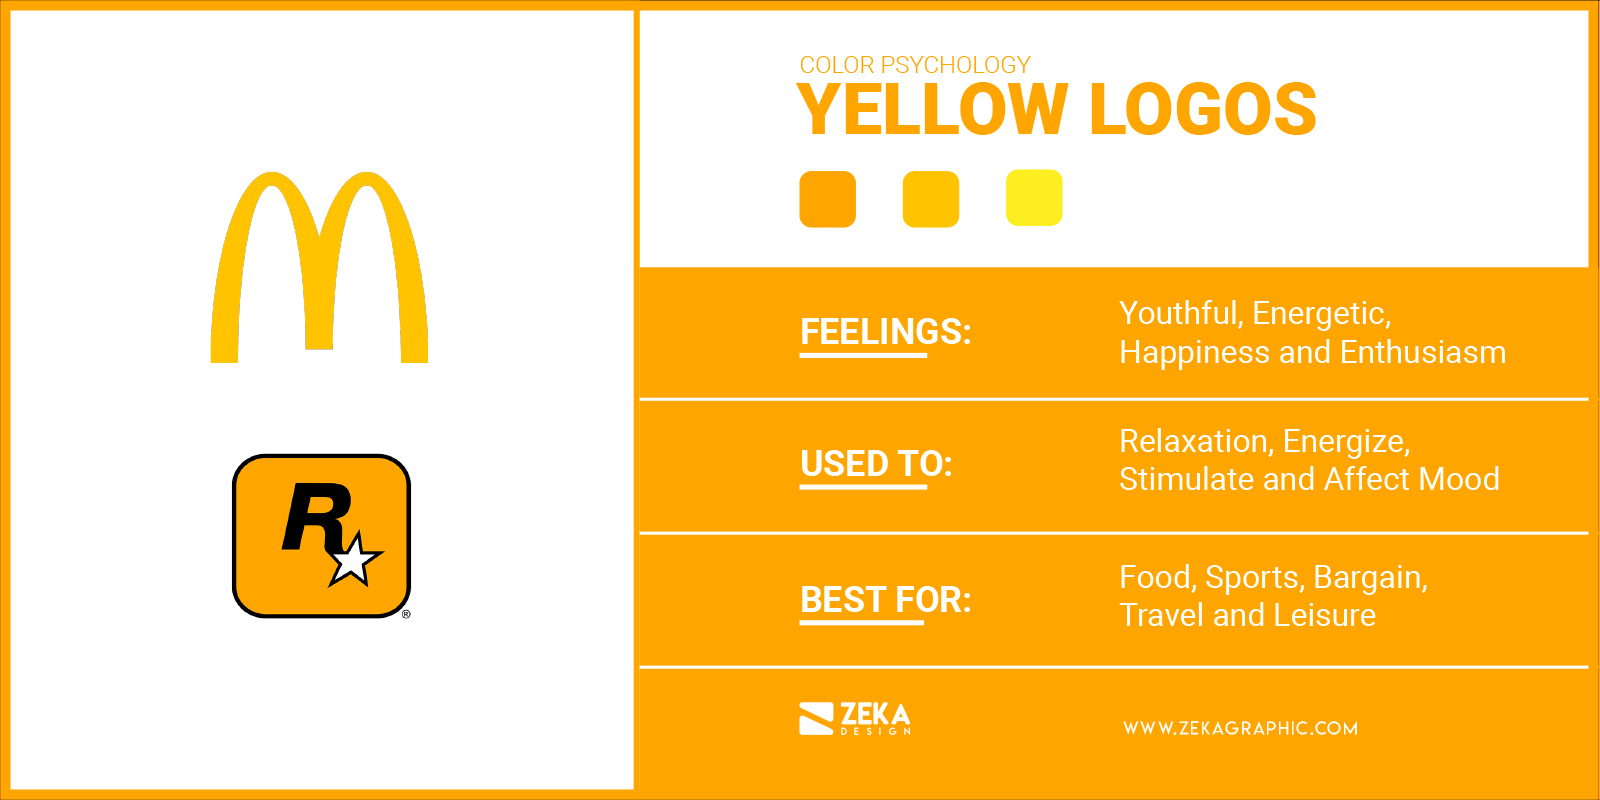 Yellow Logos Meaning in Graphic Design